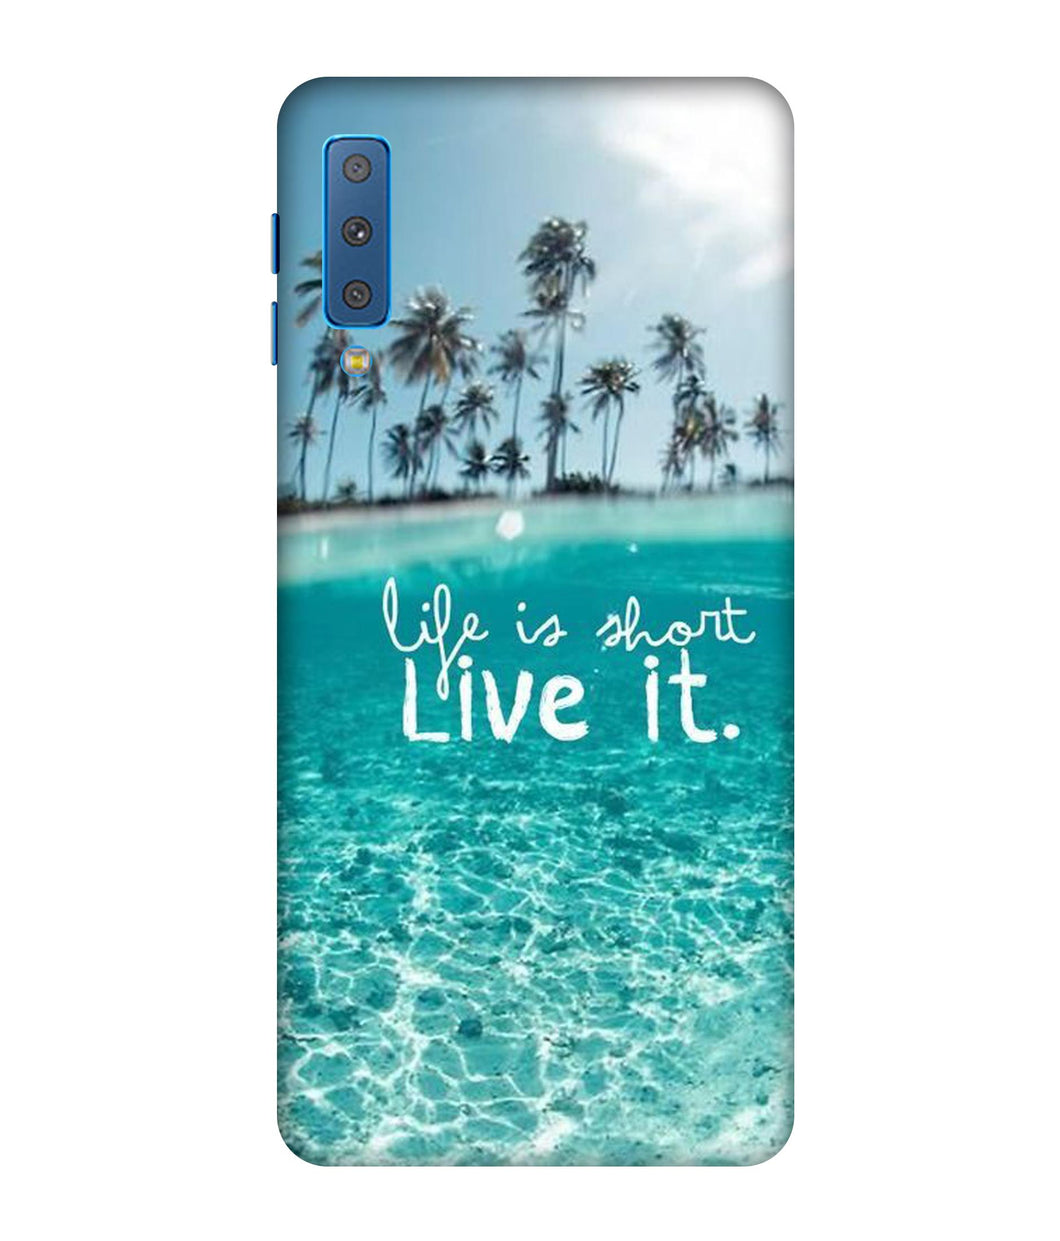 Samsung Galaxy A7-2018 Live Life Awesome Mobile cover